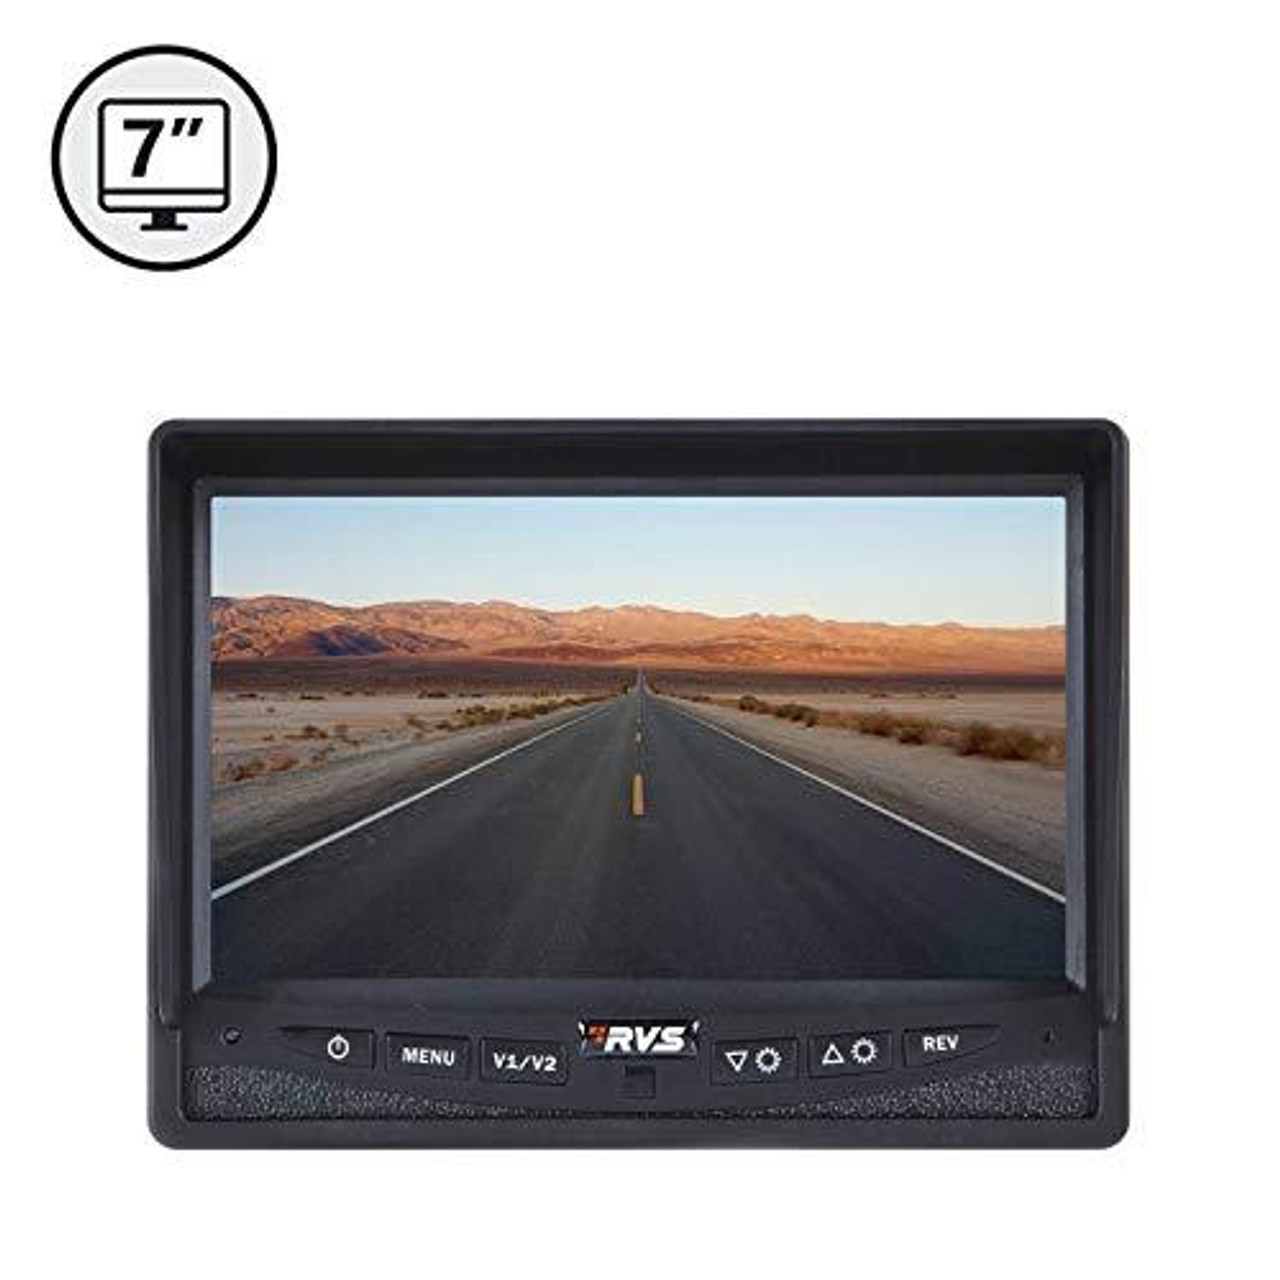 "7"" LED Digital Color Rear View Monitor (Power Harness)"